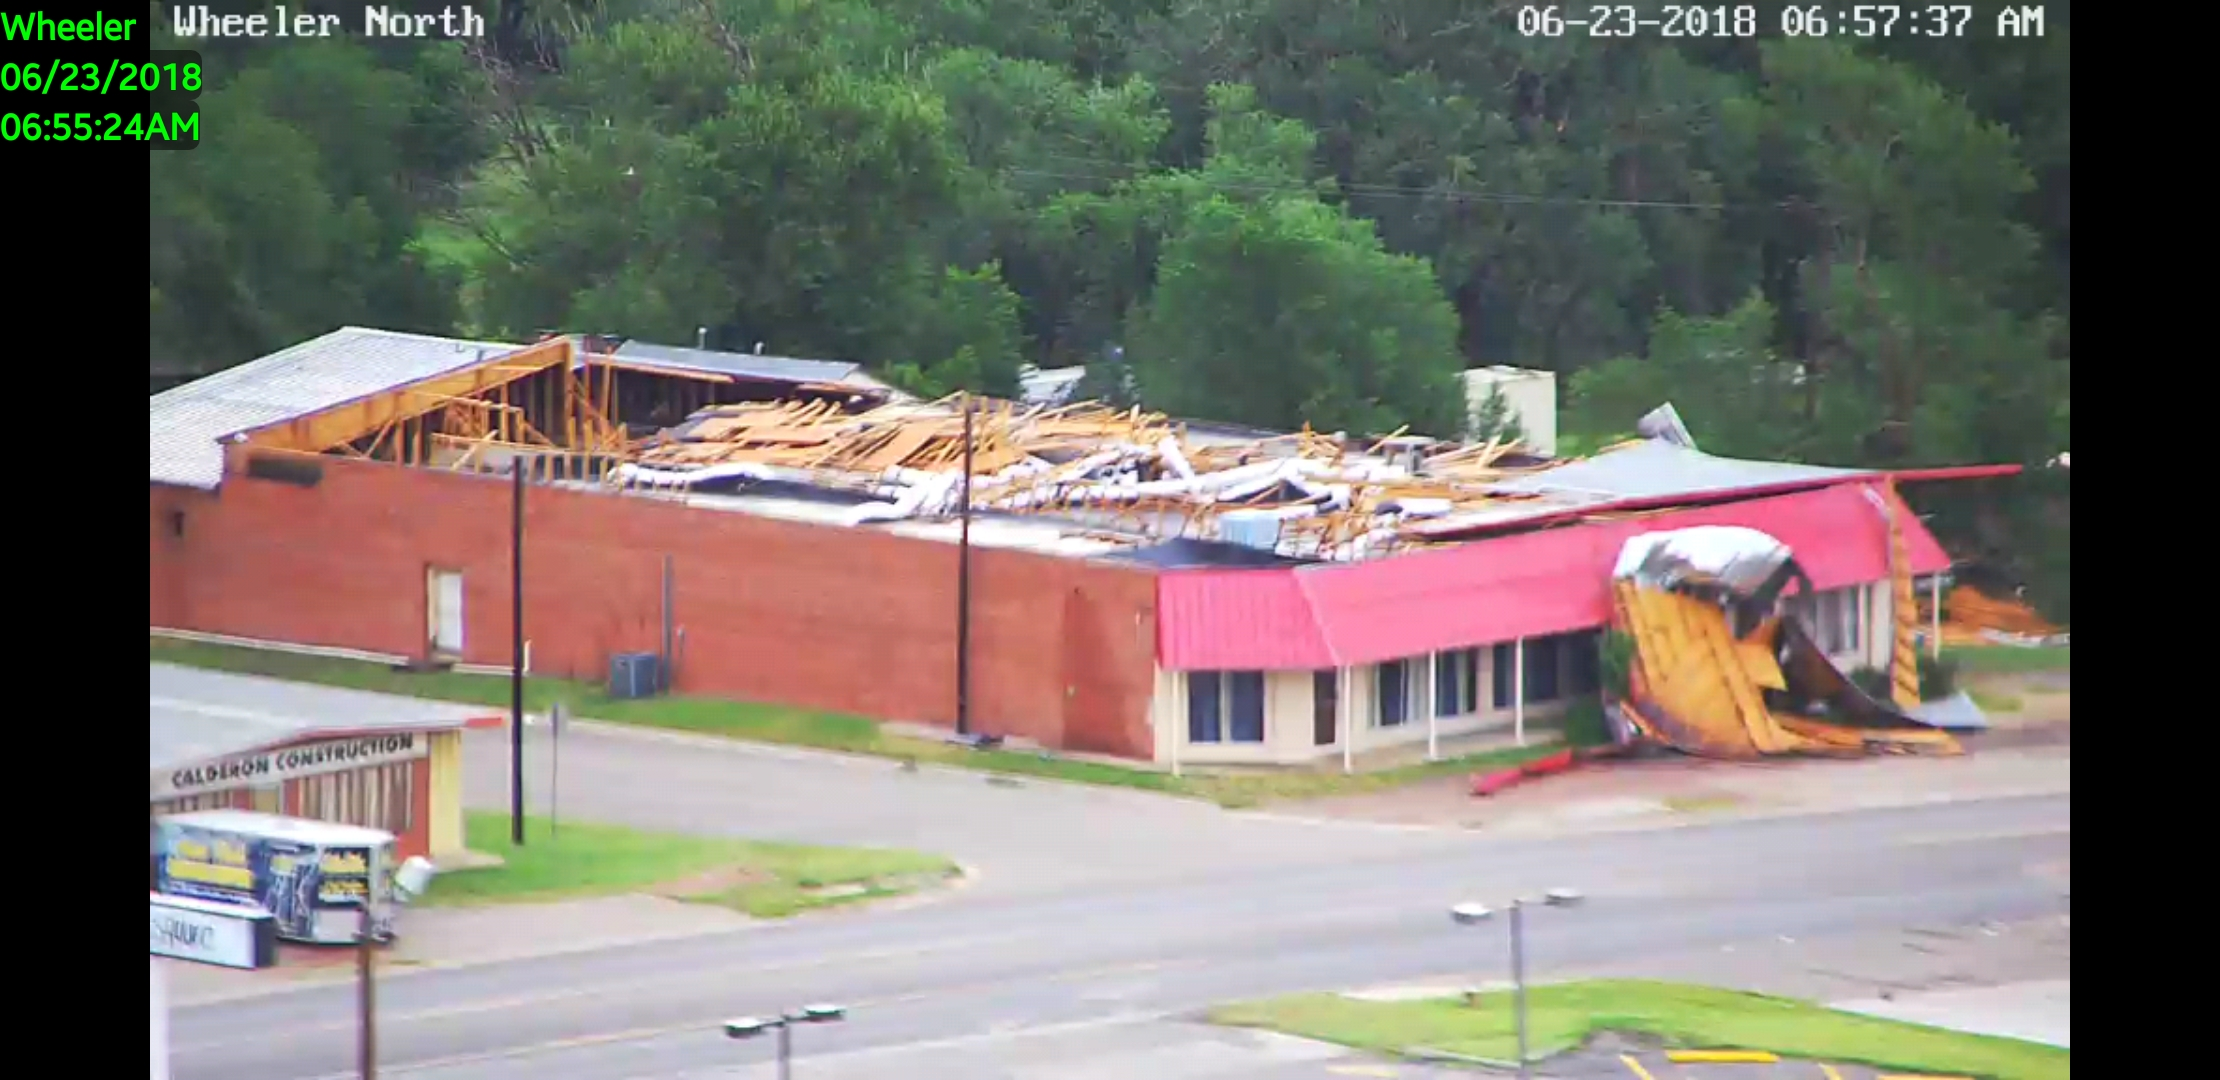 This damaged business is on Highway 152, just two or three blocks east of the courthouse....just beyond the Dairy Queen.{&amp;nbsp;}<p></p>